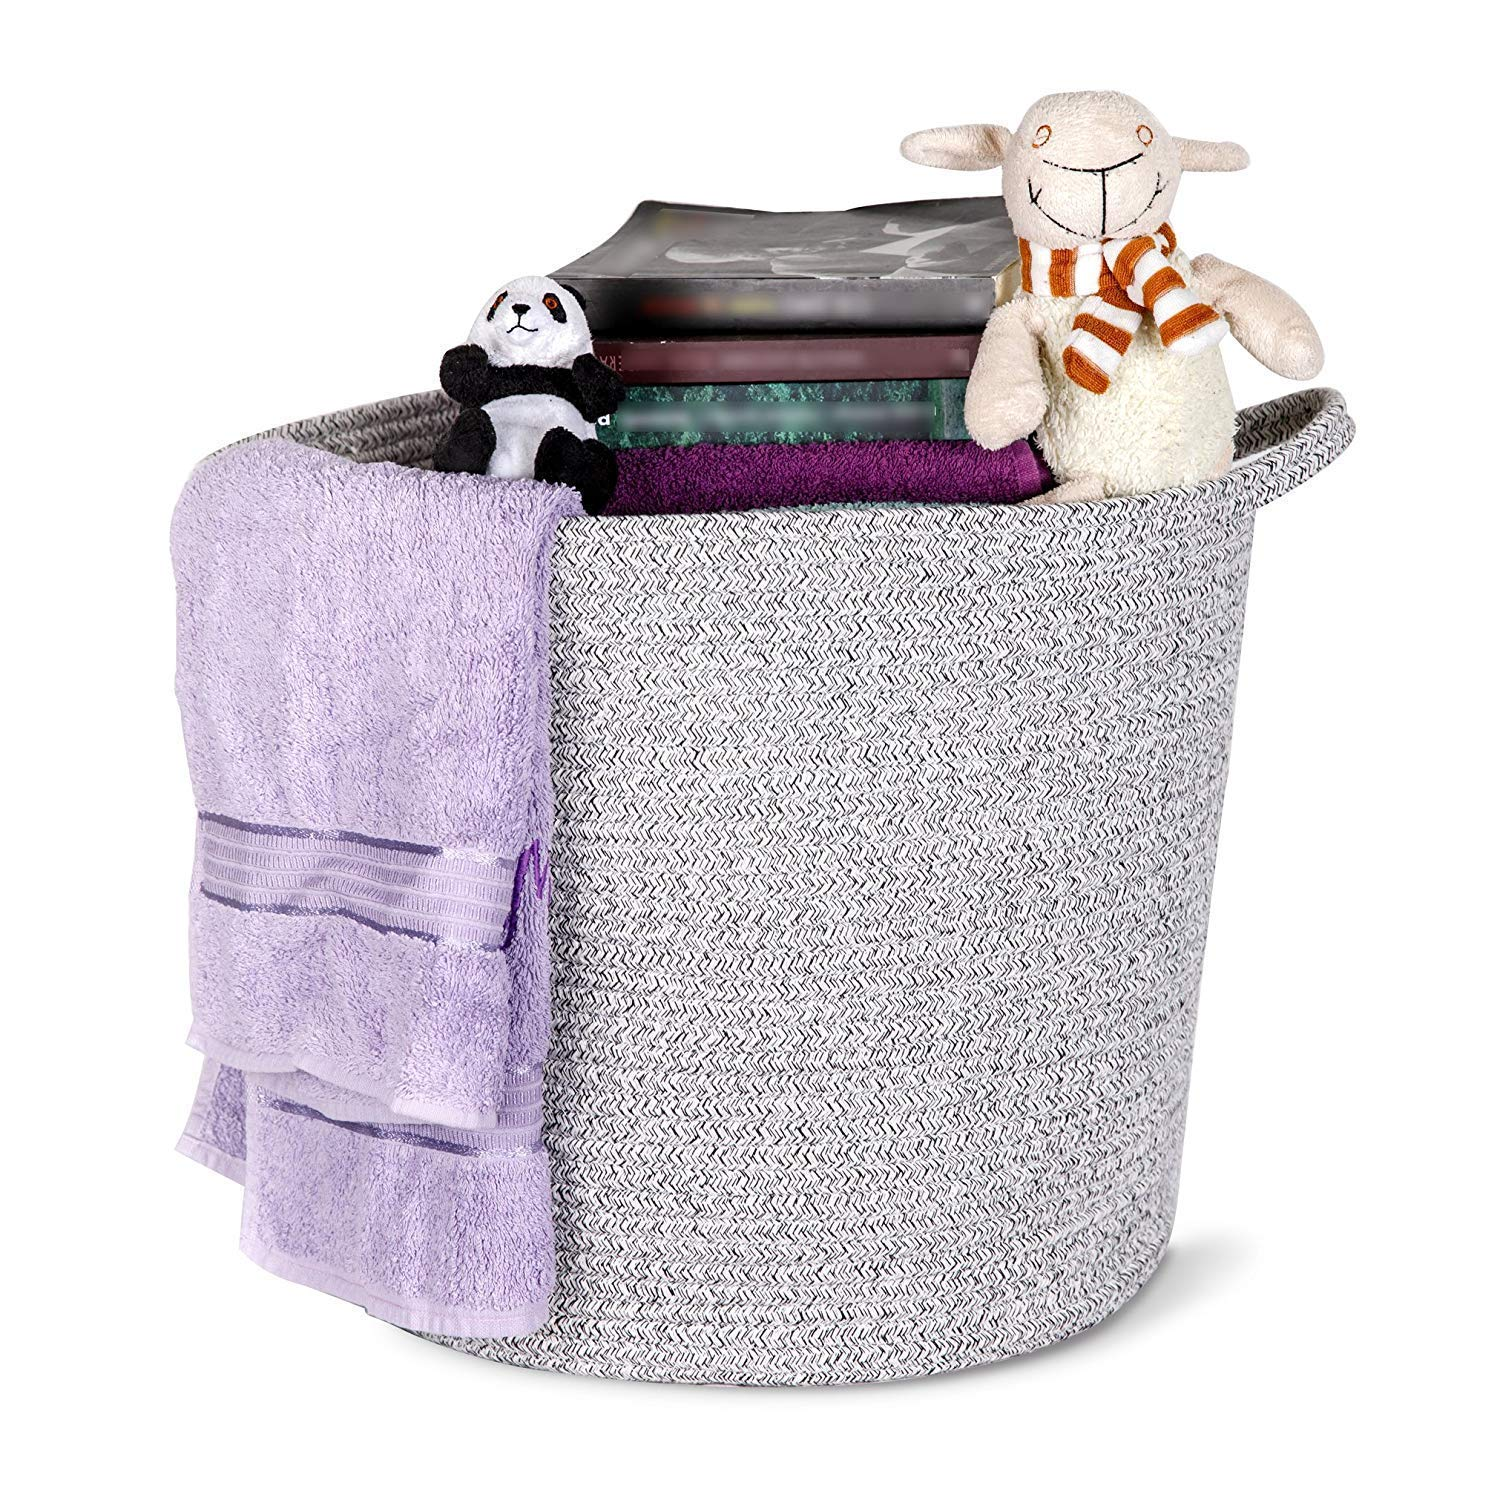 TidlyLand Cotton Rope Basket - Large 15''x14'' Grey Woven Storage Bin with Handles - Tall Nursery Organizer for Clothes, Laundry, Towels and Baby Toys - Natural Round Fabric Hamper for Room Organizing